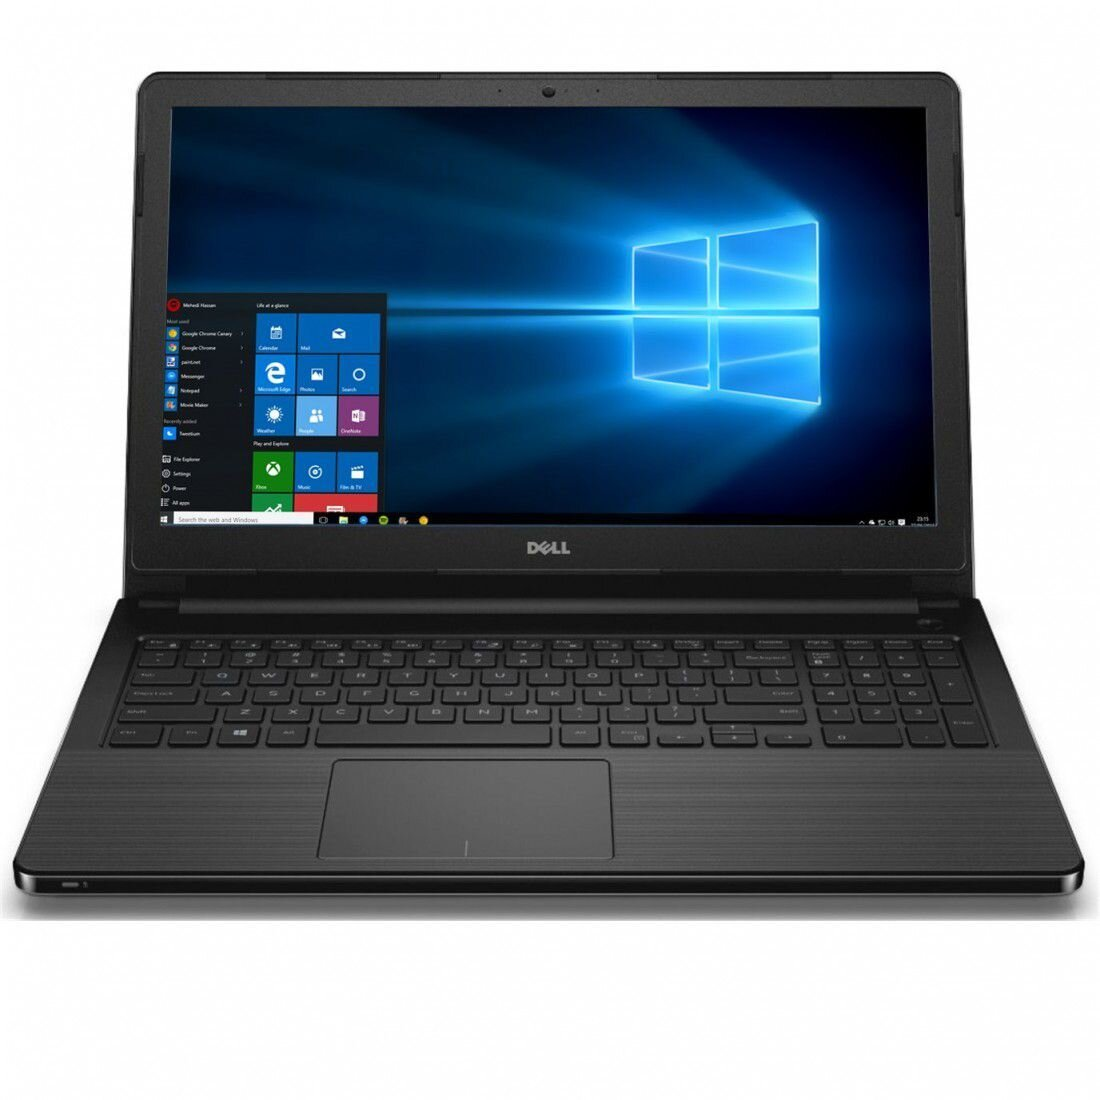 Laptop Dell Vostro 3568 i3-7100U/ 4GB/ 1TB/ 15.6 inches (Đen)